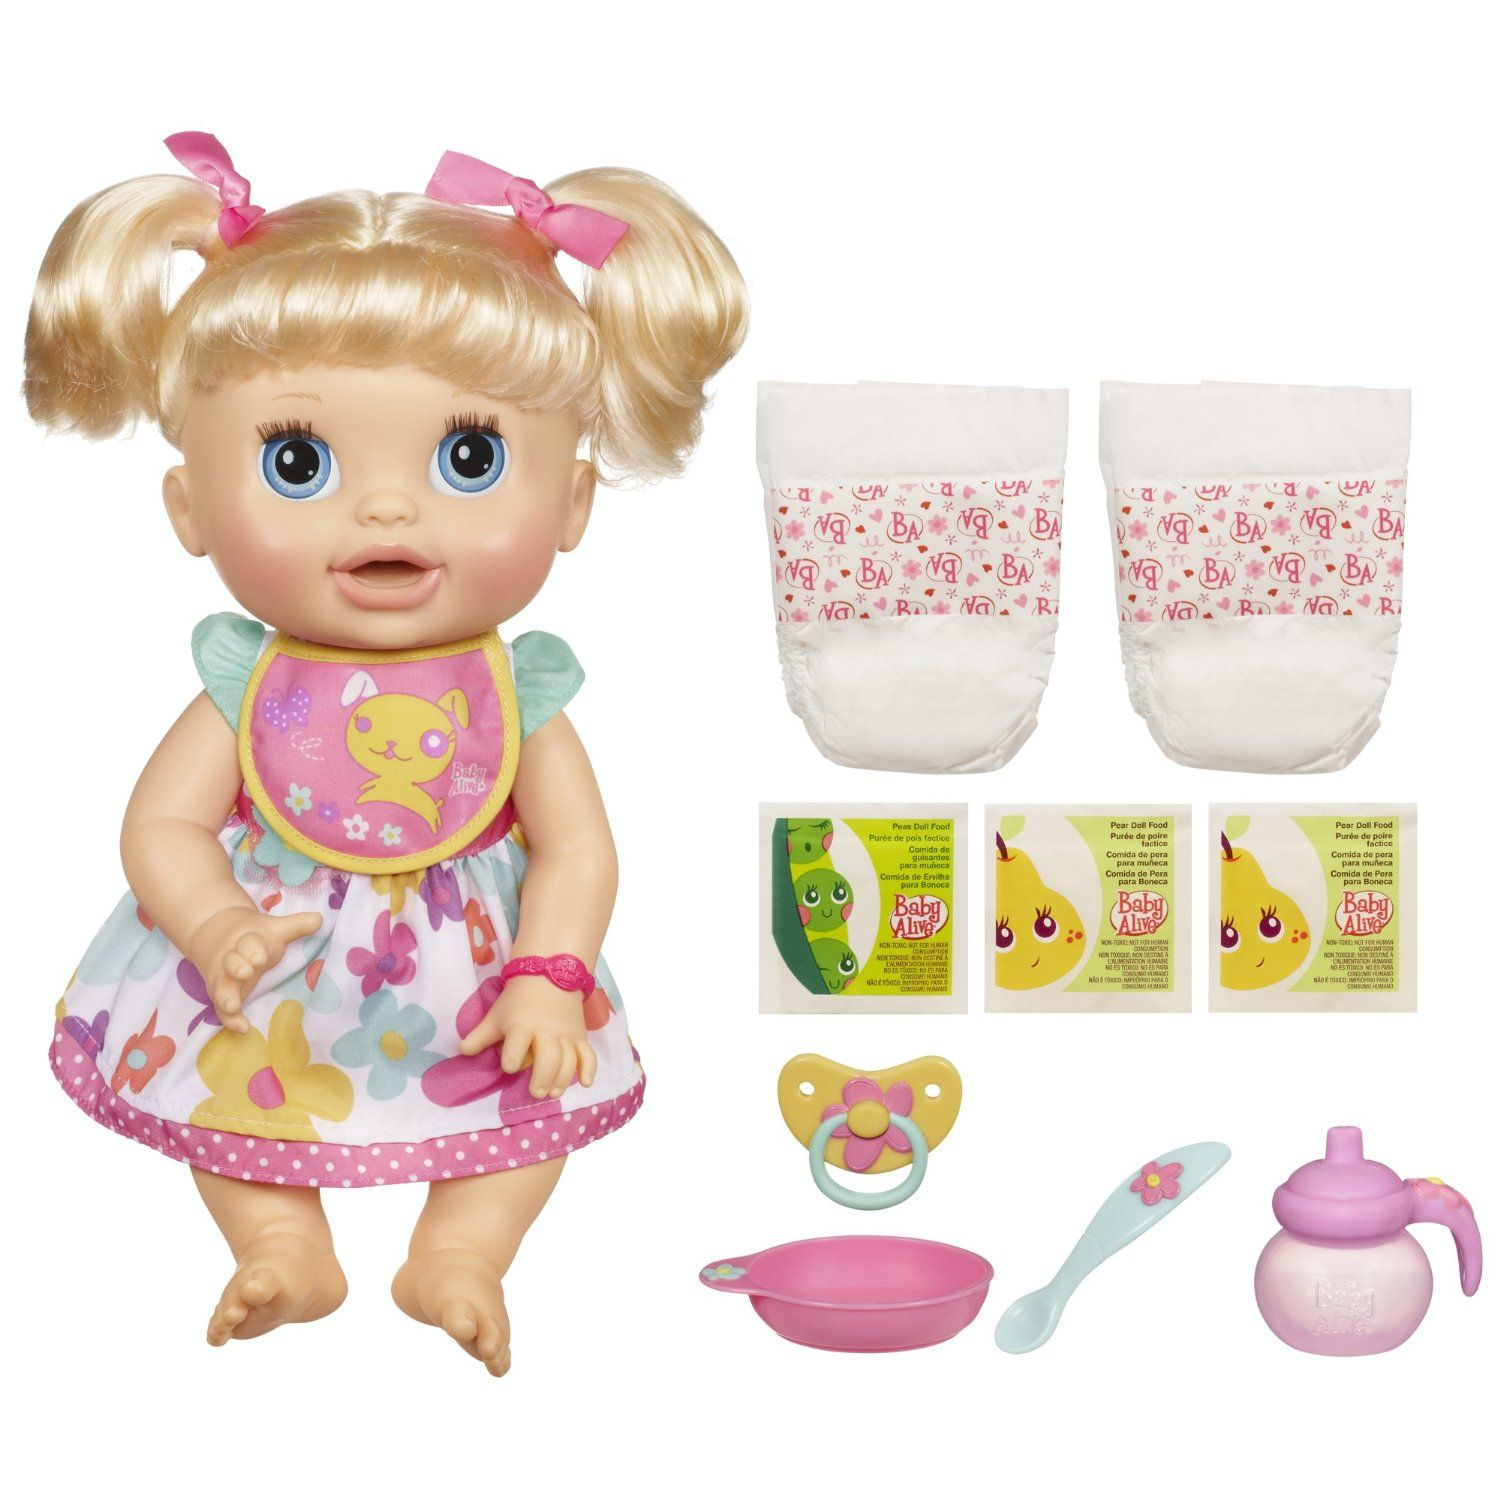 Baby Alive Real Surprises Baby Doll Doll speaks English or Spanish